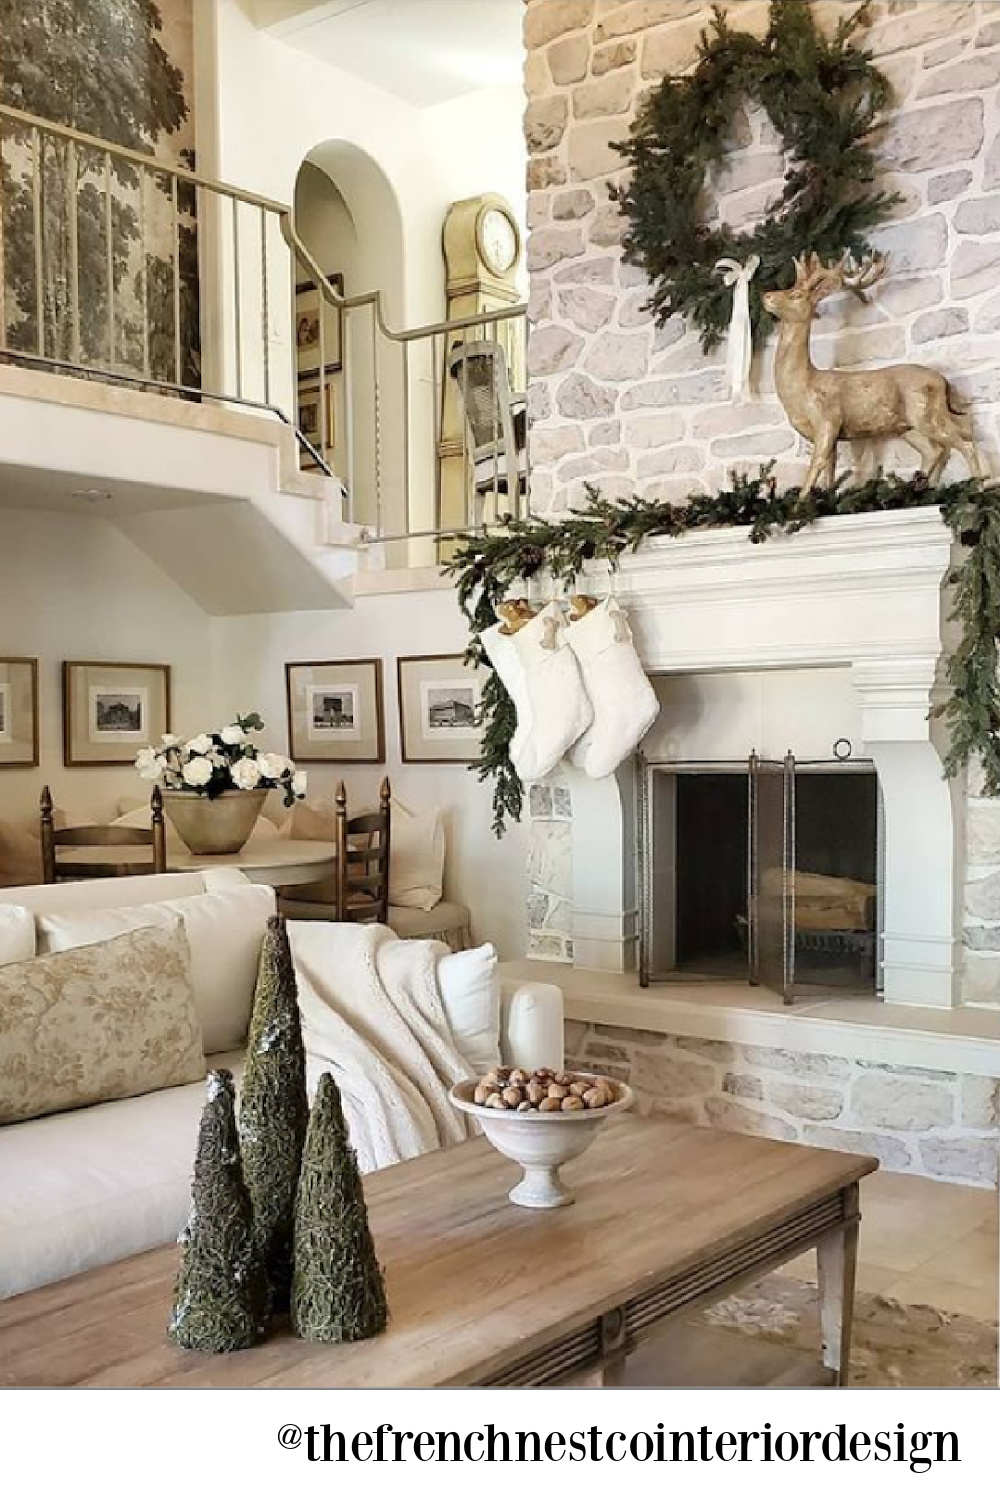 French country Christmas decor in a lovely living room with neutral palette and white - The French Nest Co Interior Design. #whitechristmasdecor #frenchcountrychristmas